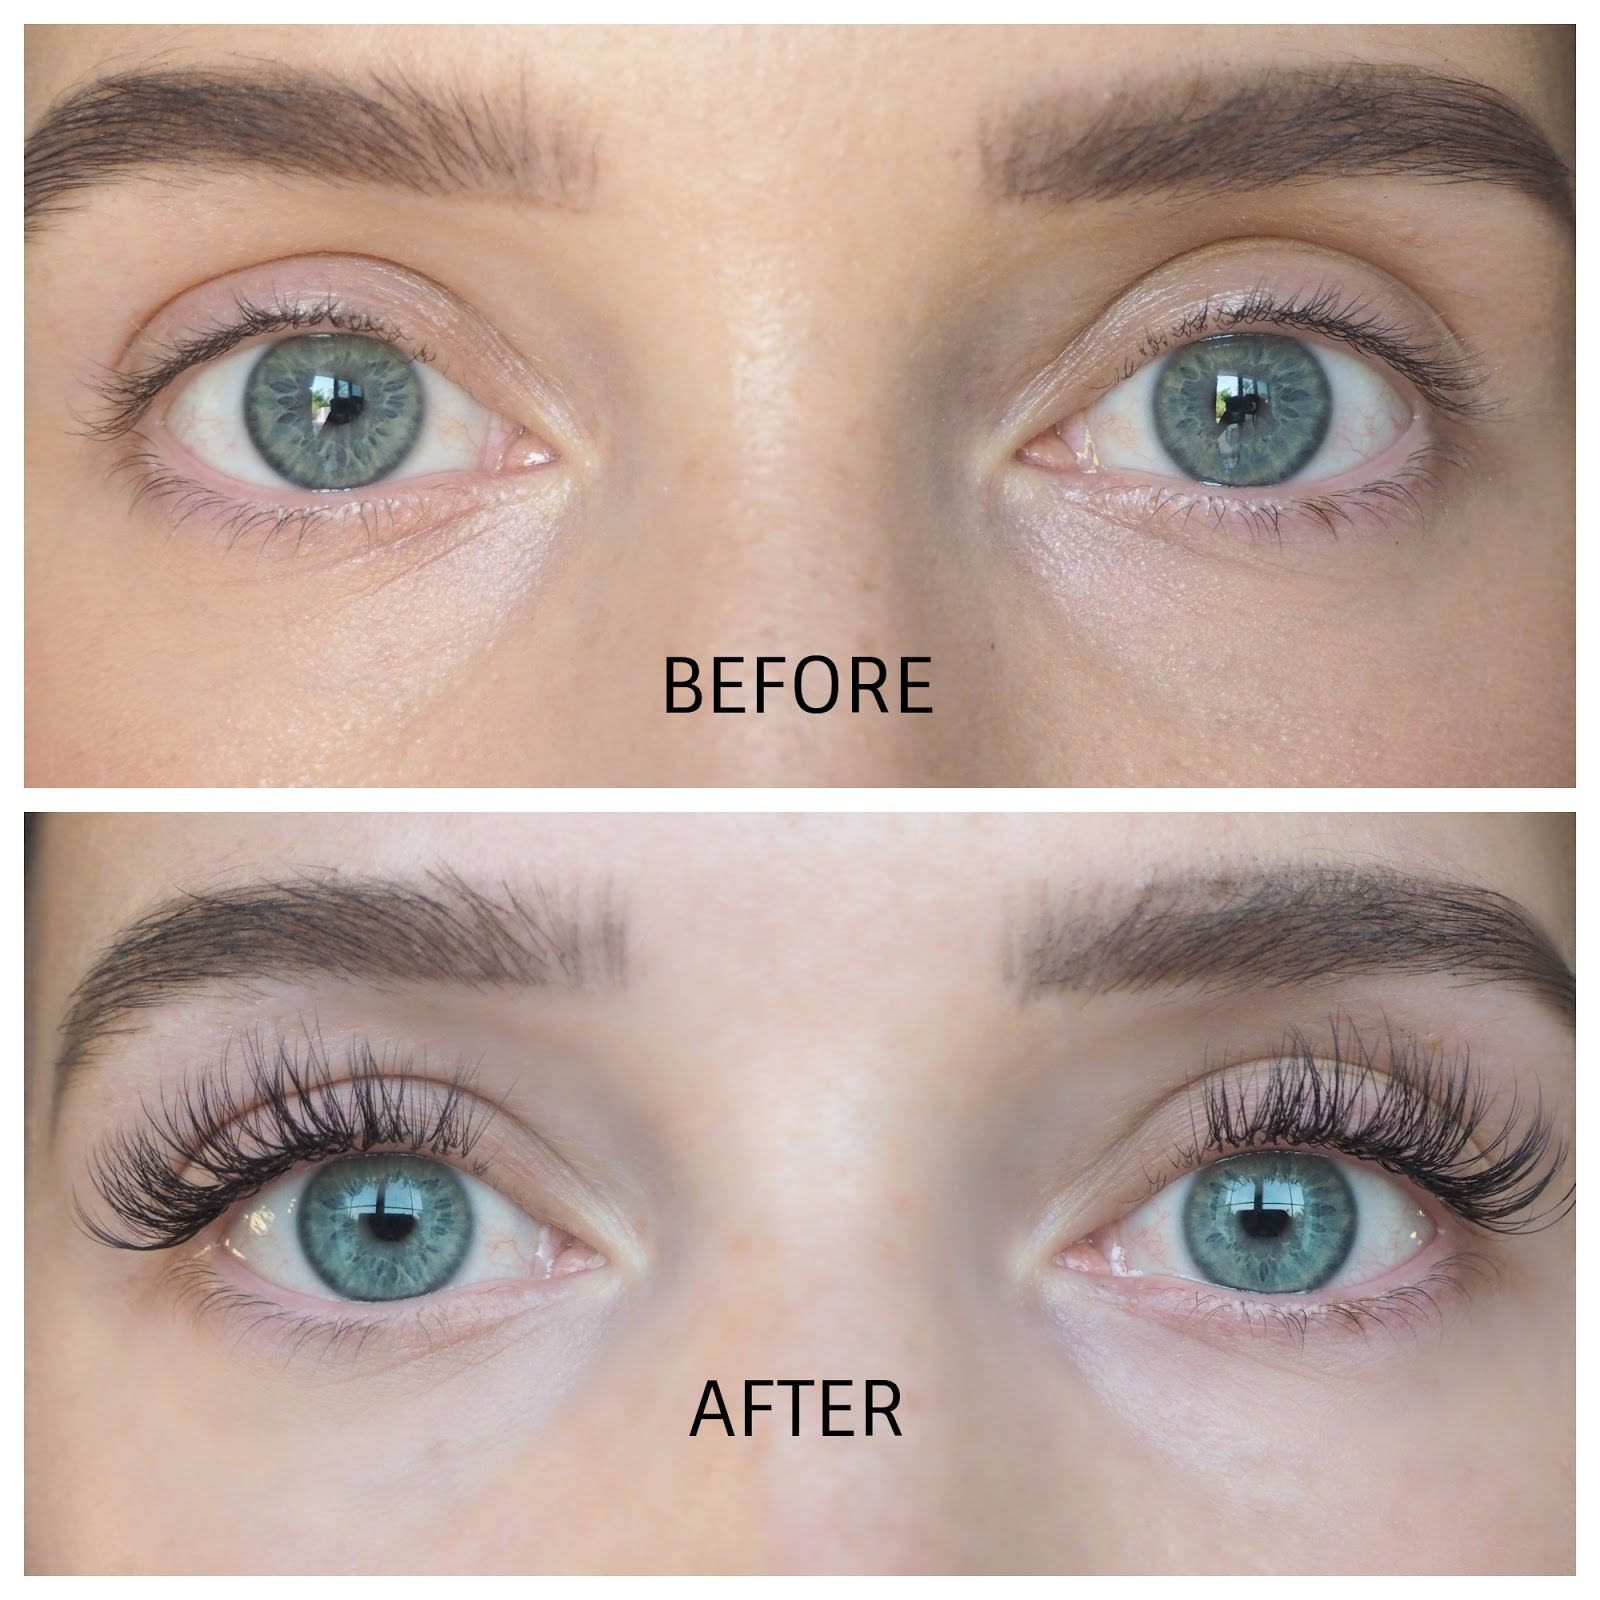 Nouveau Lashes Svs Lash Treatment Review Before After Tyyli